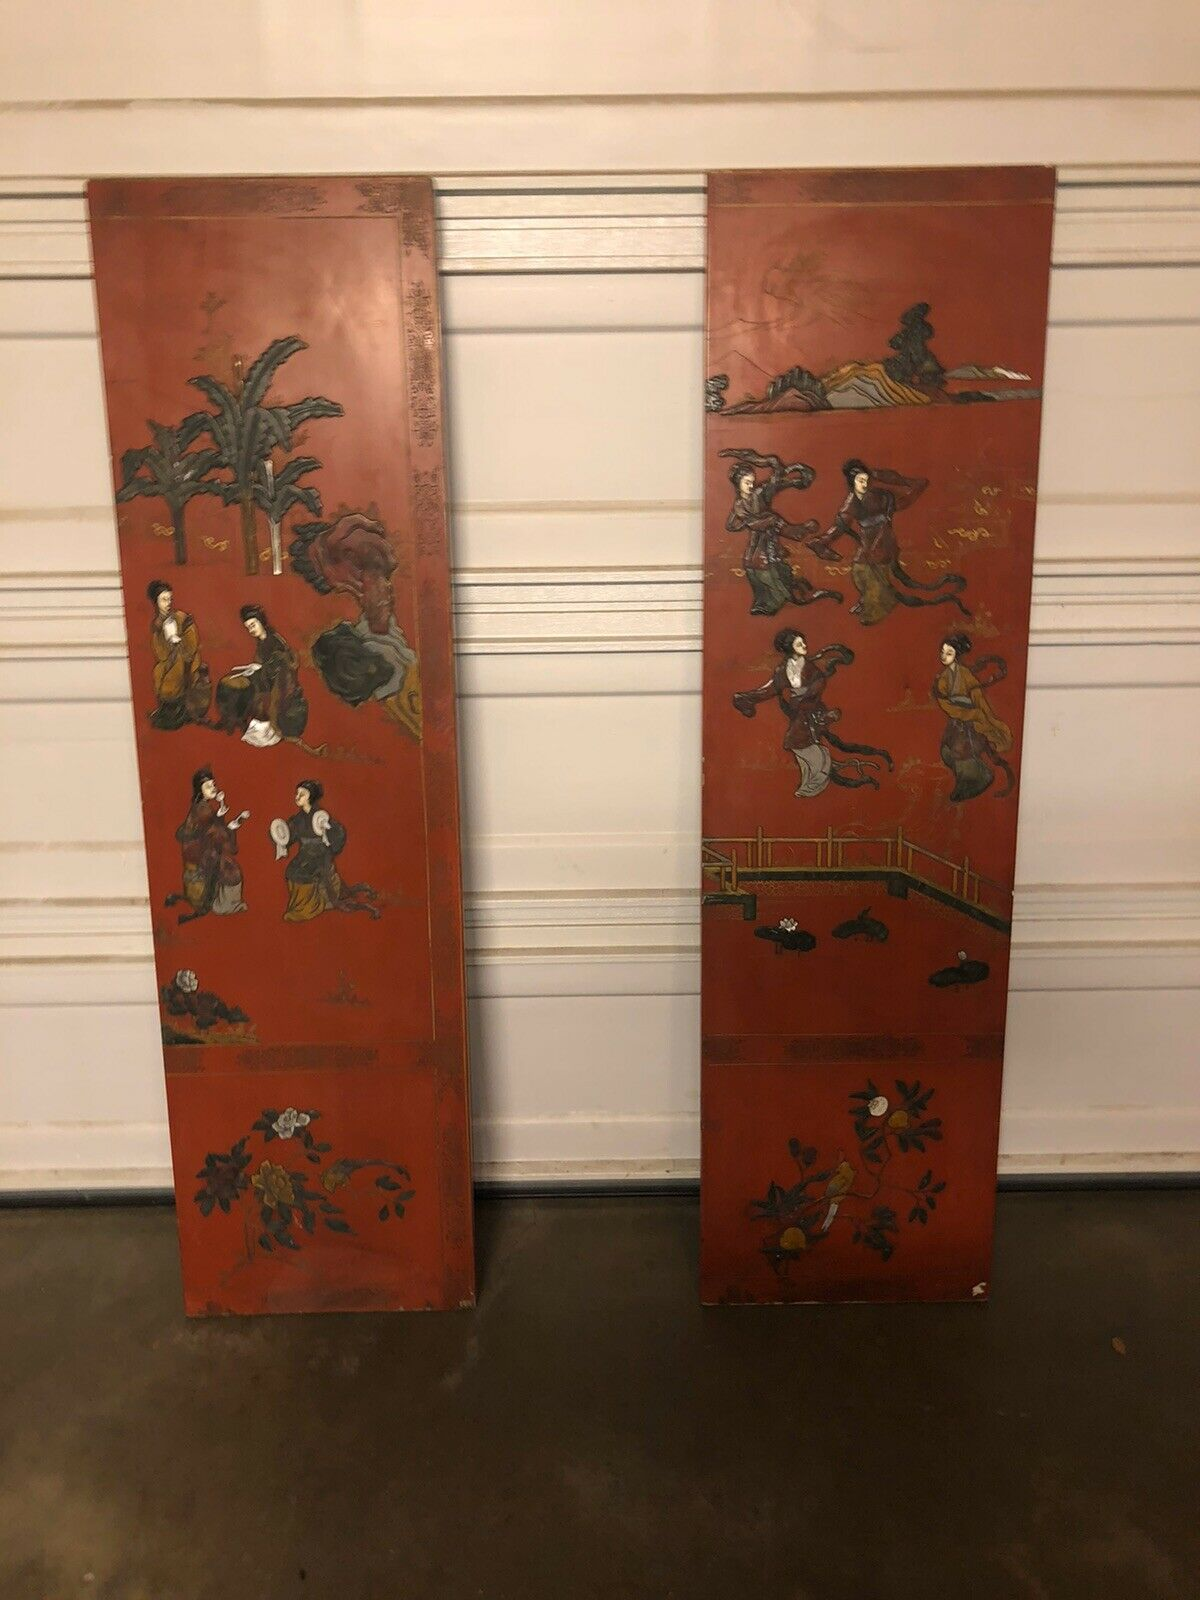 Antique Chinese Room Divider 2 Panel Screen Wall Art Decor Wired For Hanging For Sale Online